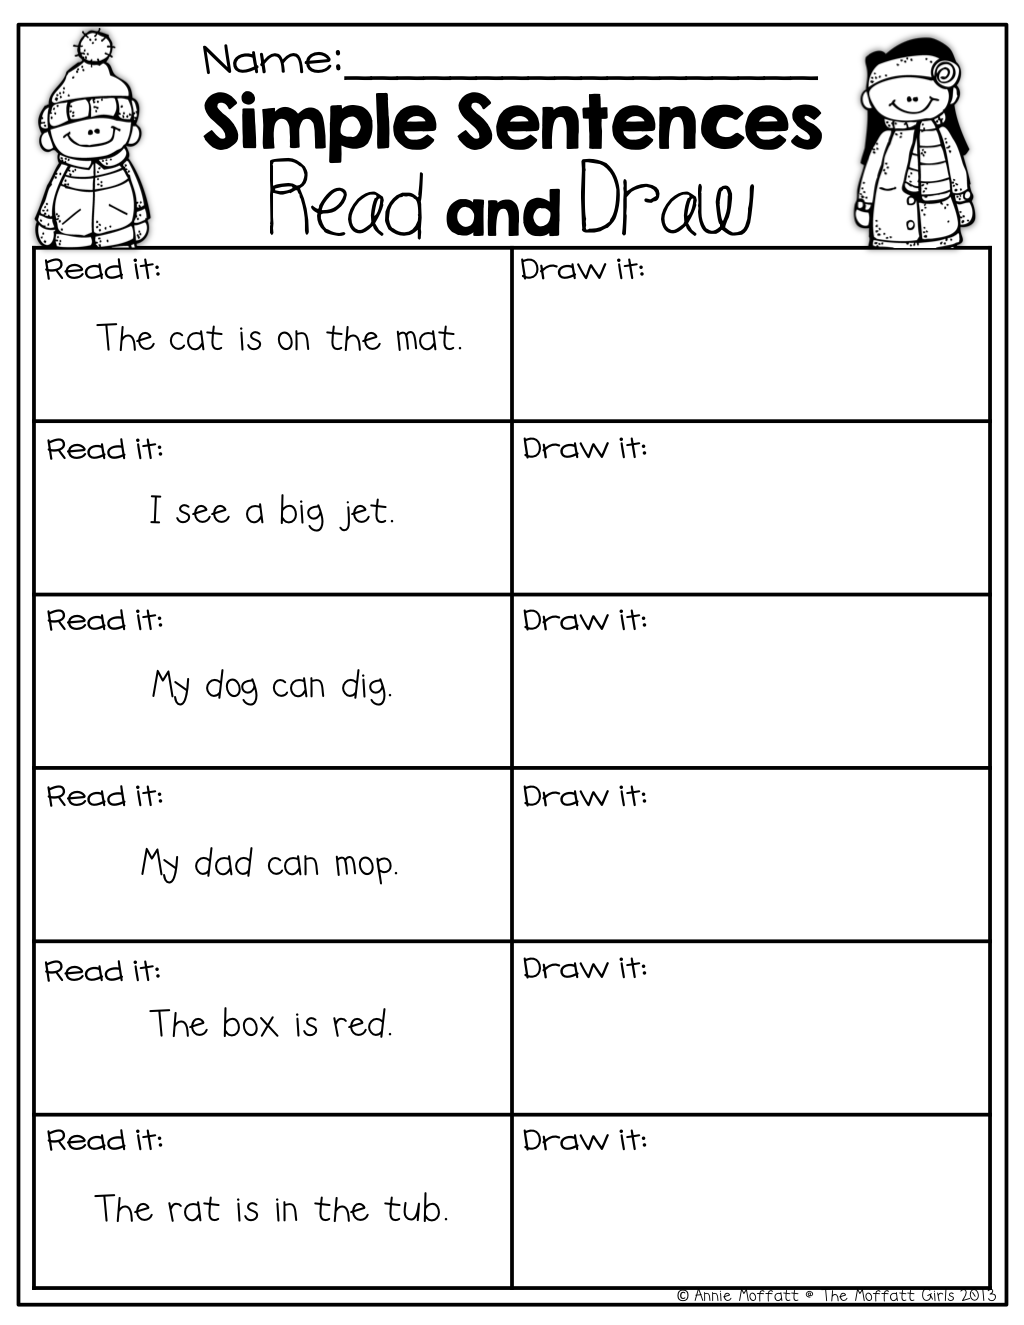 worksheet Simple Sentence Worksheet simple sentences with sight words and cvc read draw perfect for beginning